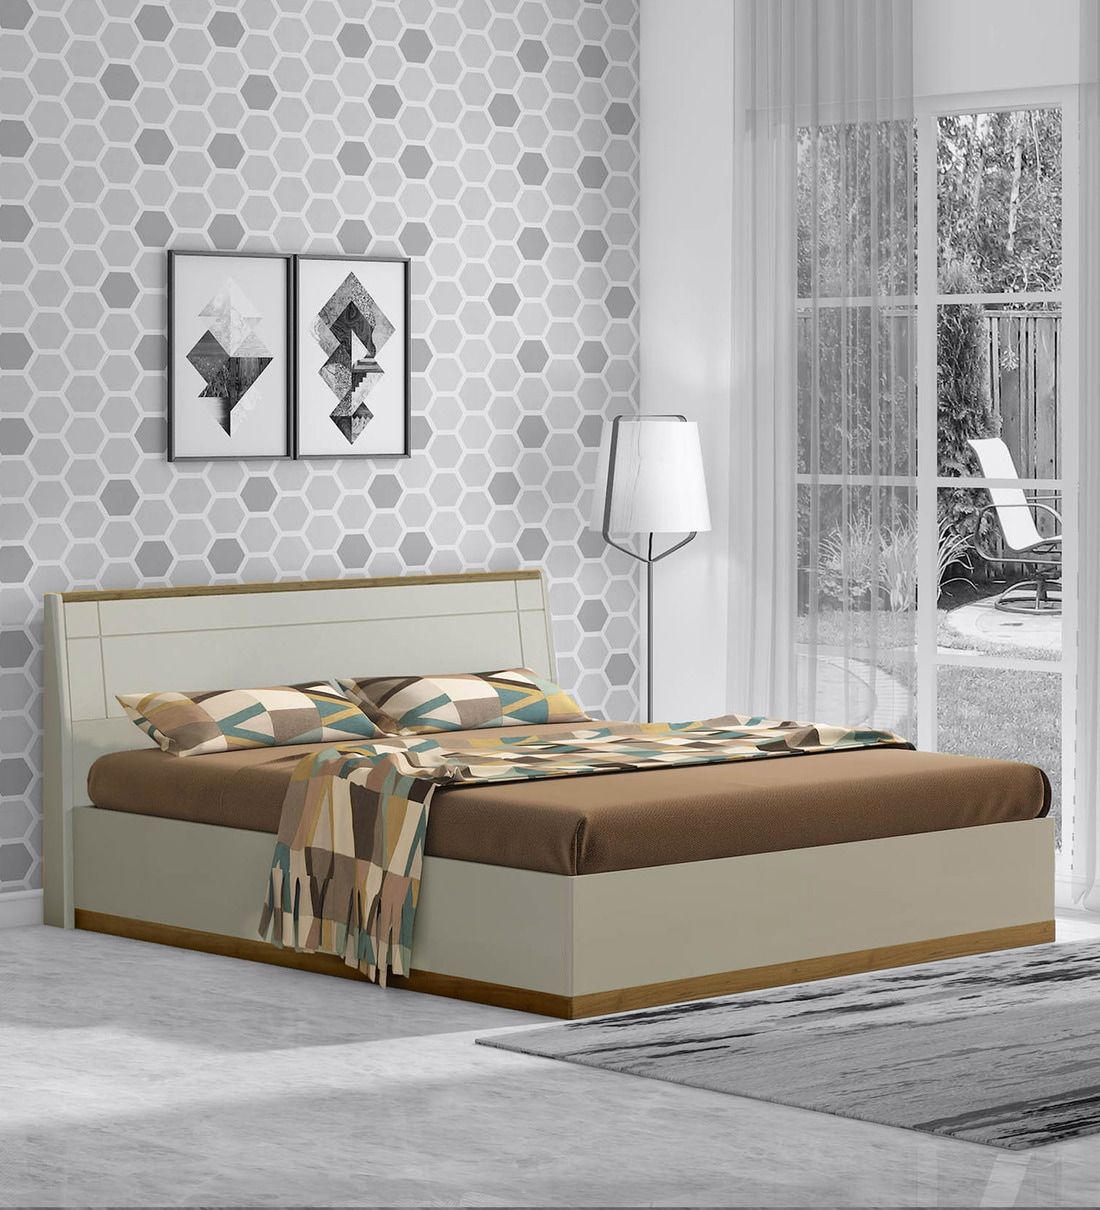 Buy Josefa King Size Bed With Storage In Natural Teak Wood Finish By Casacraft Online Contemporary King Size Beds Beds Furniture Pepperfry Product